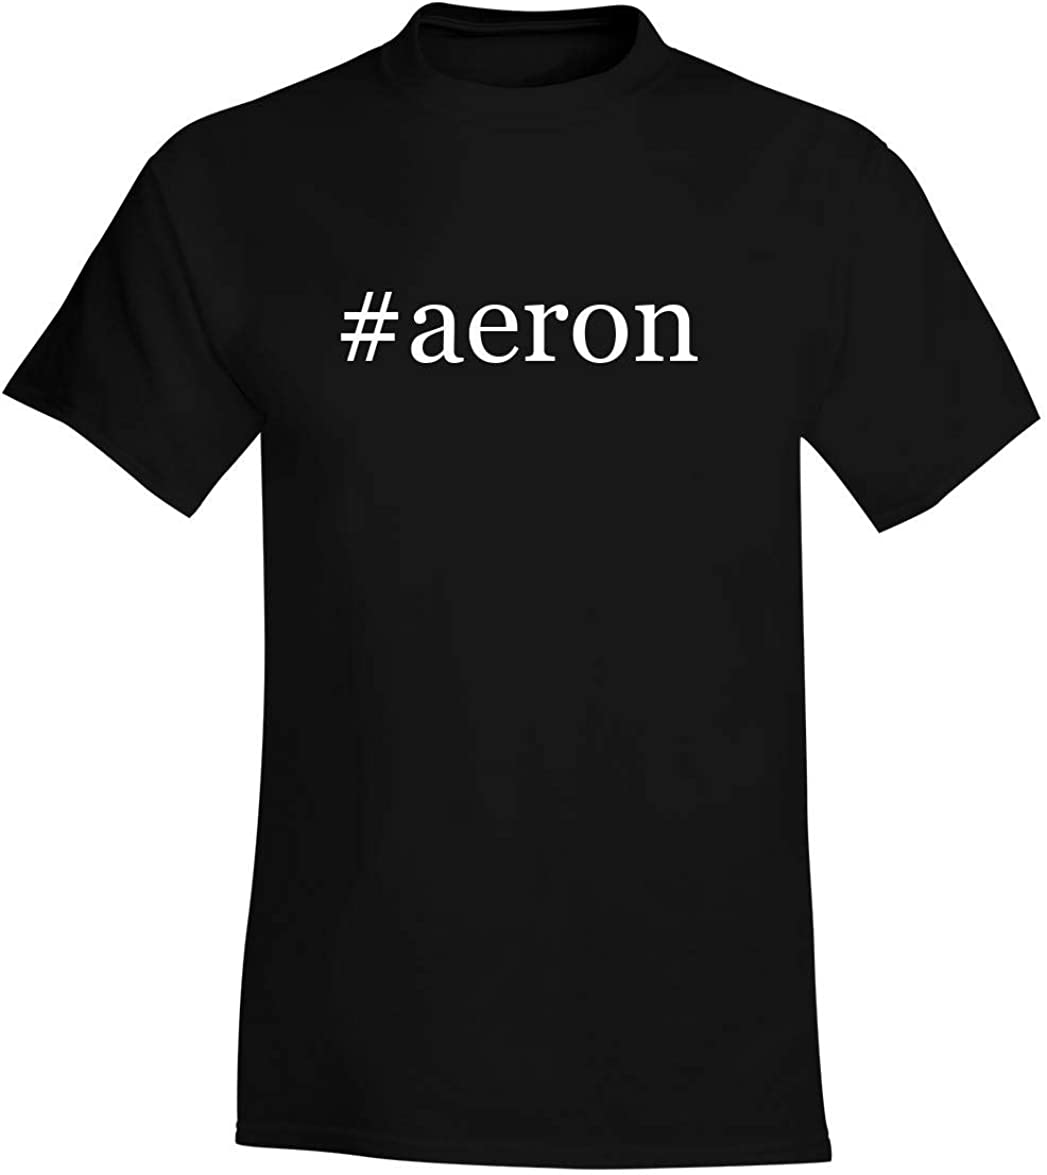 #Aeron - ein Hashtag Soft & Comfortable Men'S T-Shirt